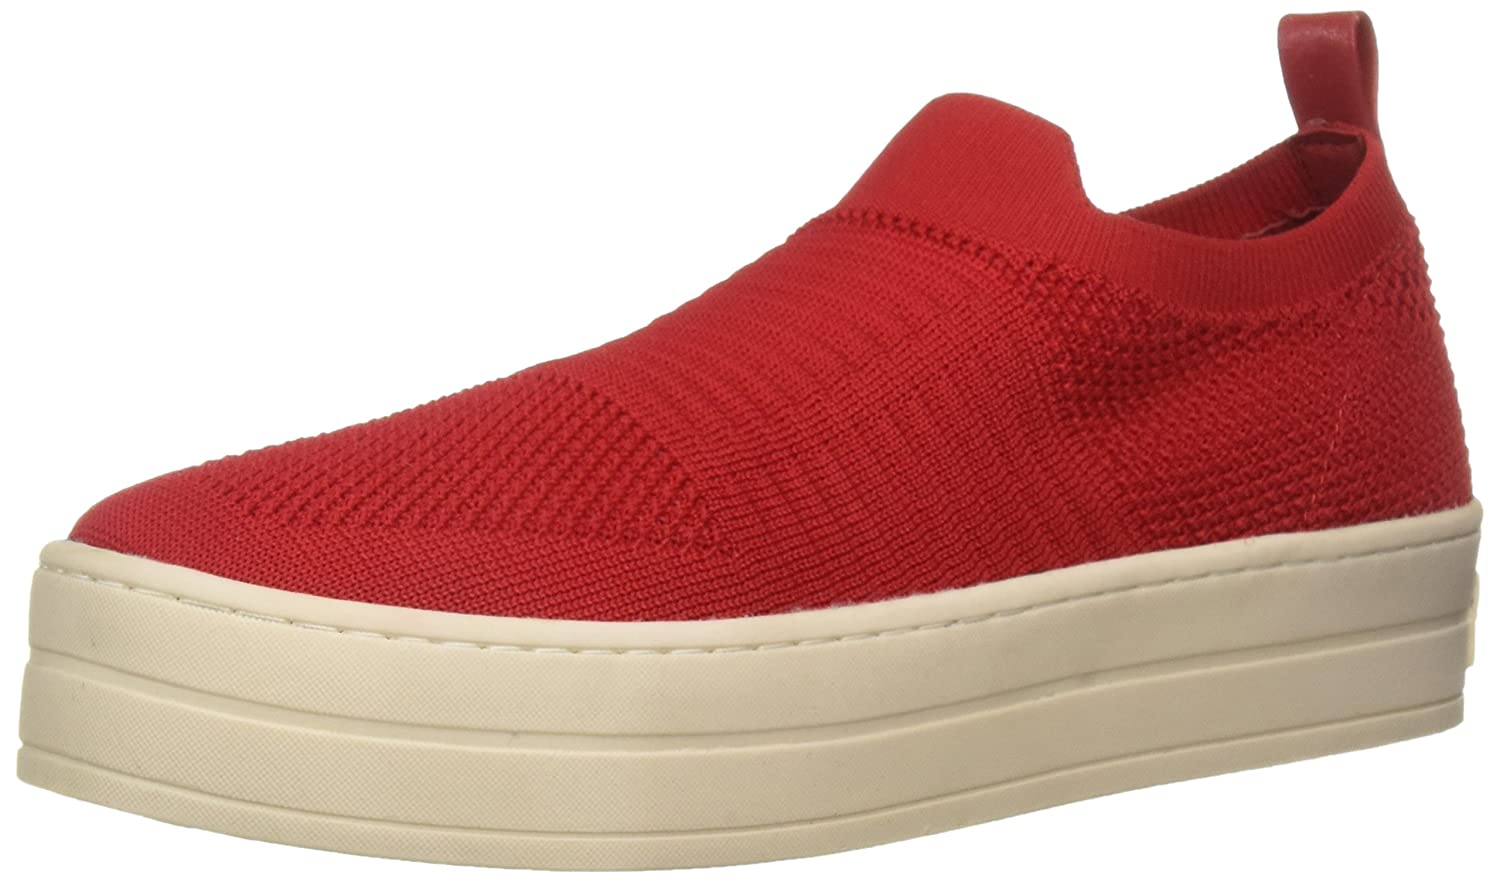 J Slides Women's Hilo Sneaker B0778G9MMW 6.5 B(M) US|Red